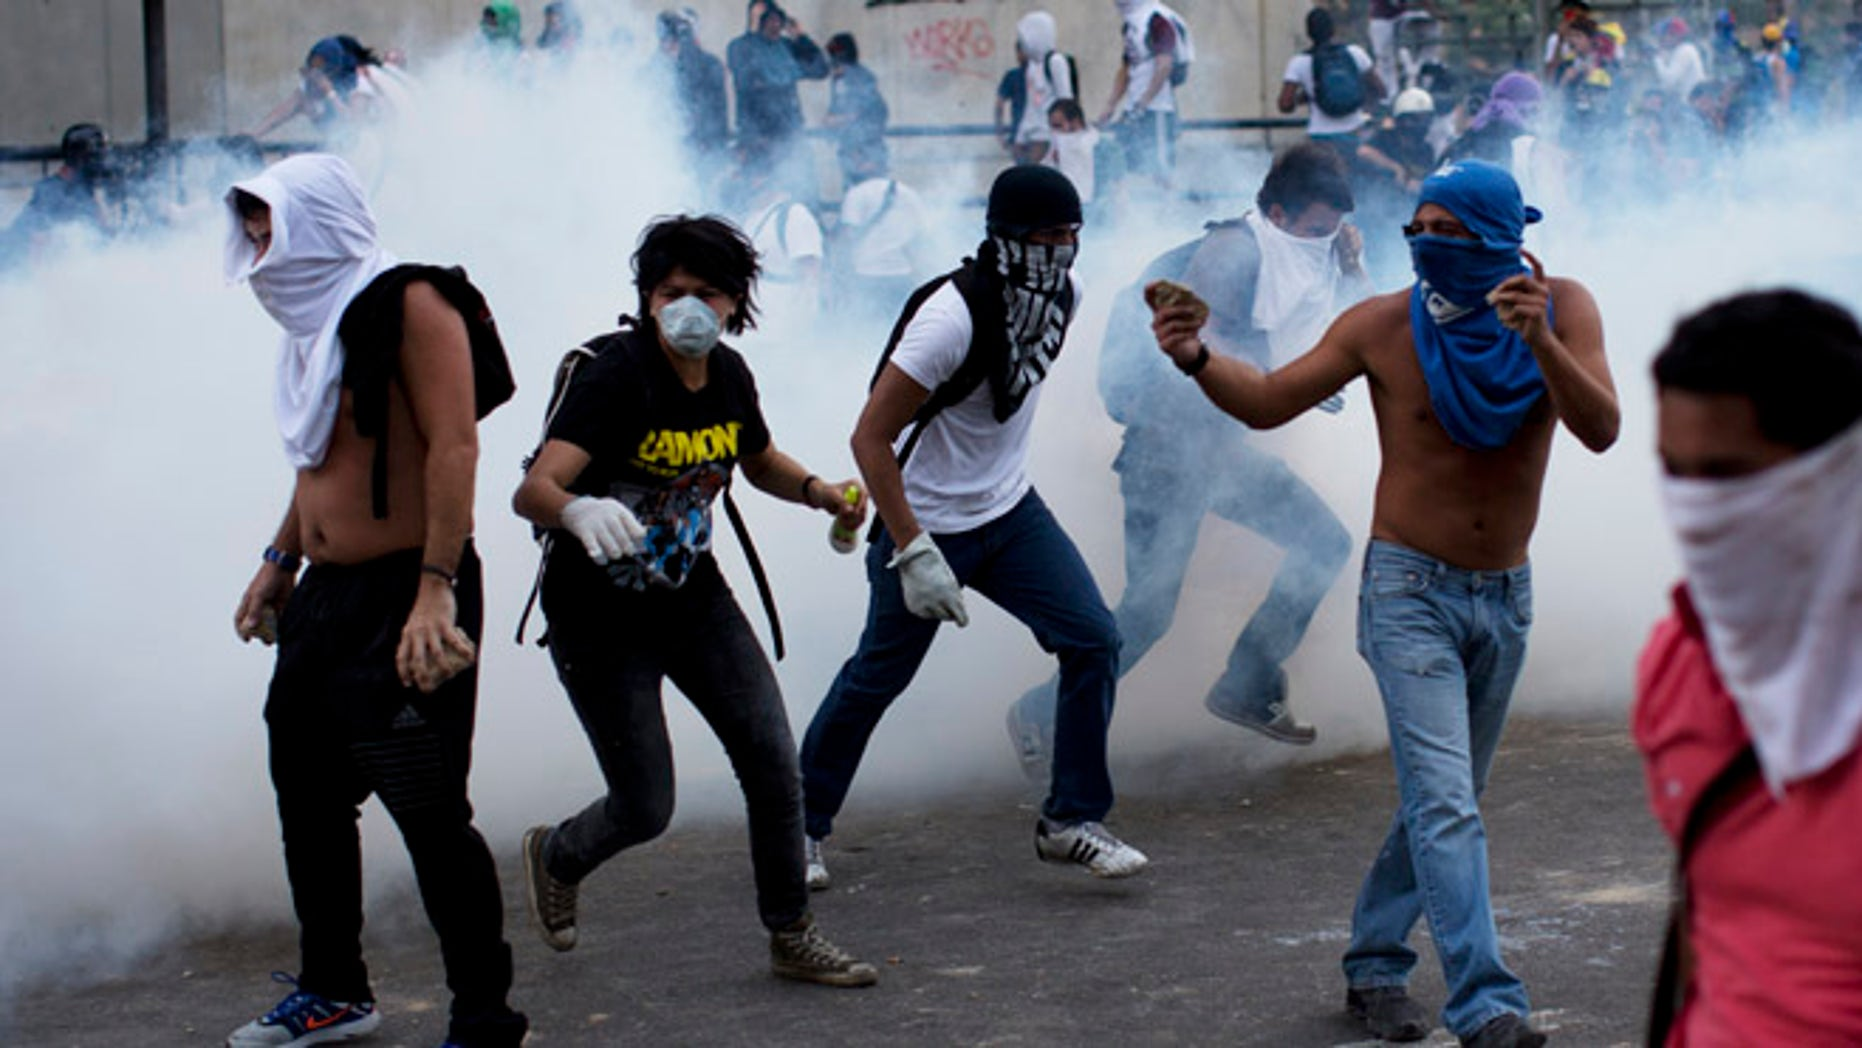 Feb. 22, 2014: A group of masked men run for cover after riot police launched tear gas in Caracas, Venezuela.